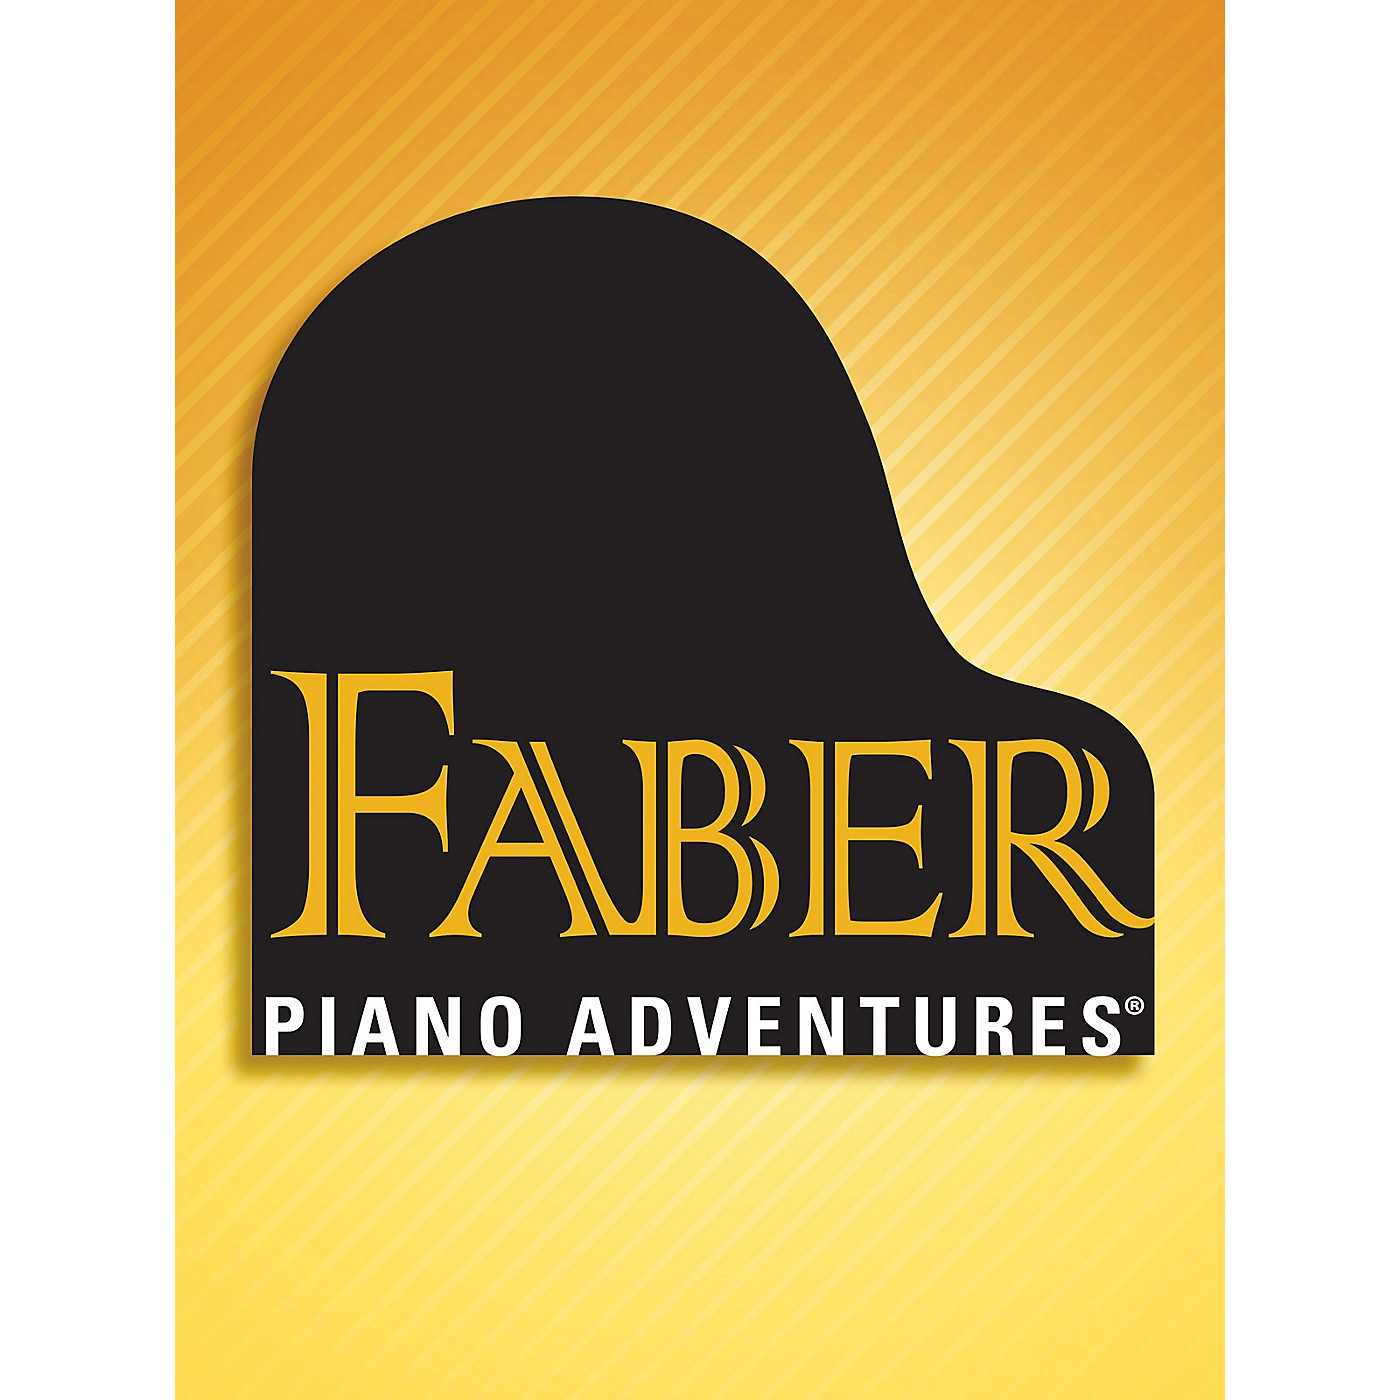 Faber Piano Adventures Accelerated Piano Adventures for the Older Beginner Faber Piano CD by Nancy Faber (Level Primer/Level 1) thumbnail